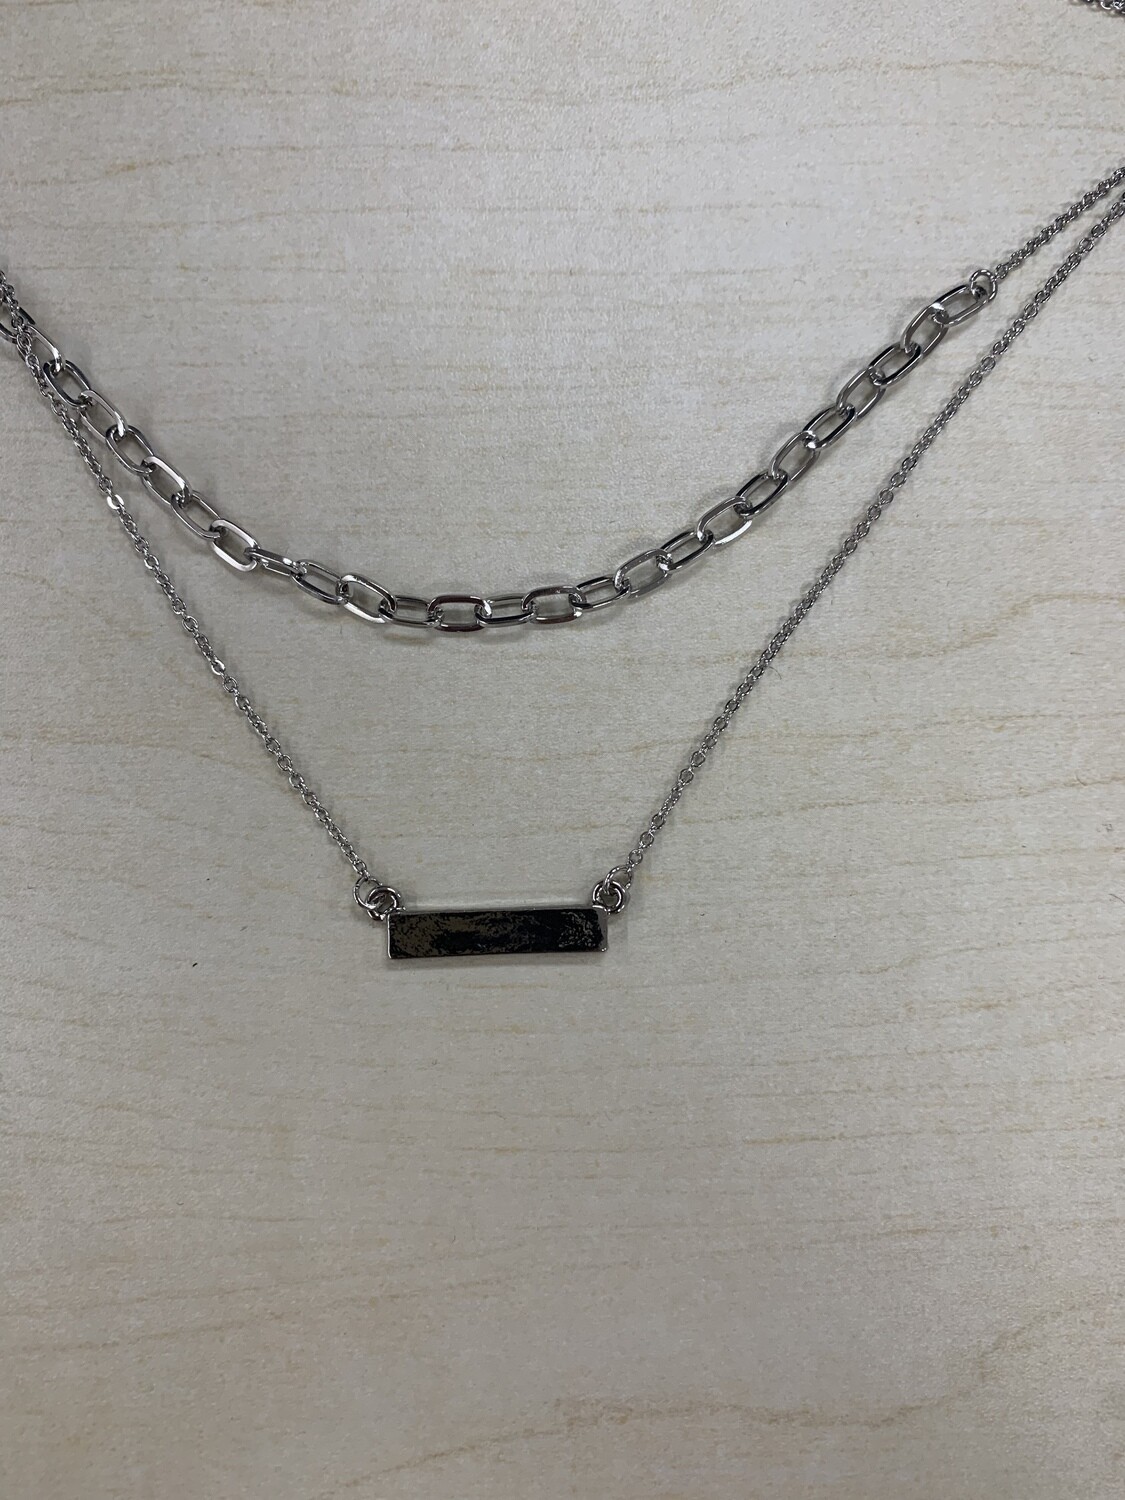 Silver Chain Link with Bar Two Layer Necklace Small